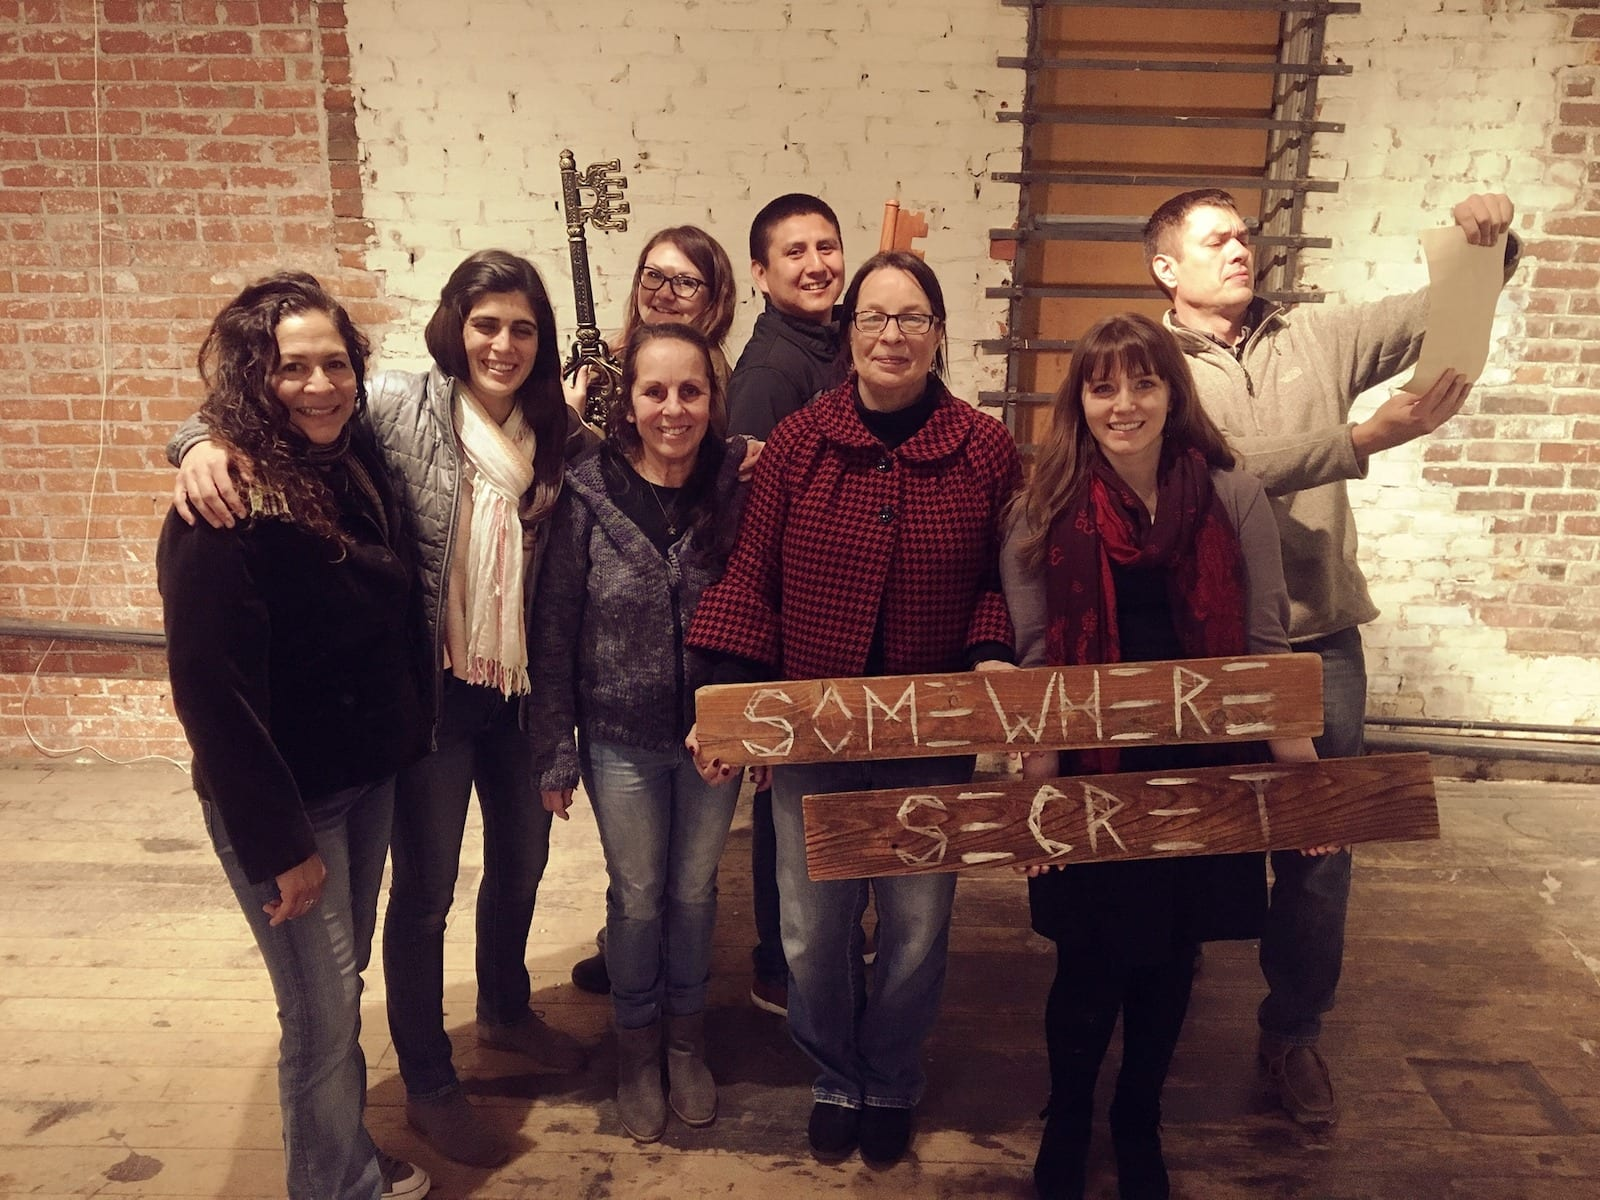 Somewhere Secret Escape Game in Fort Collins, CO